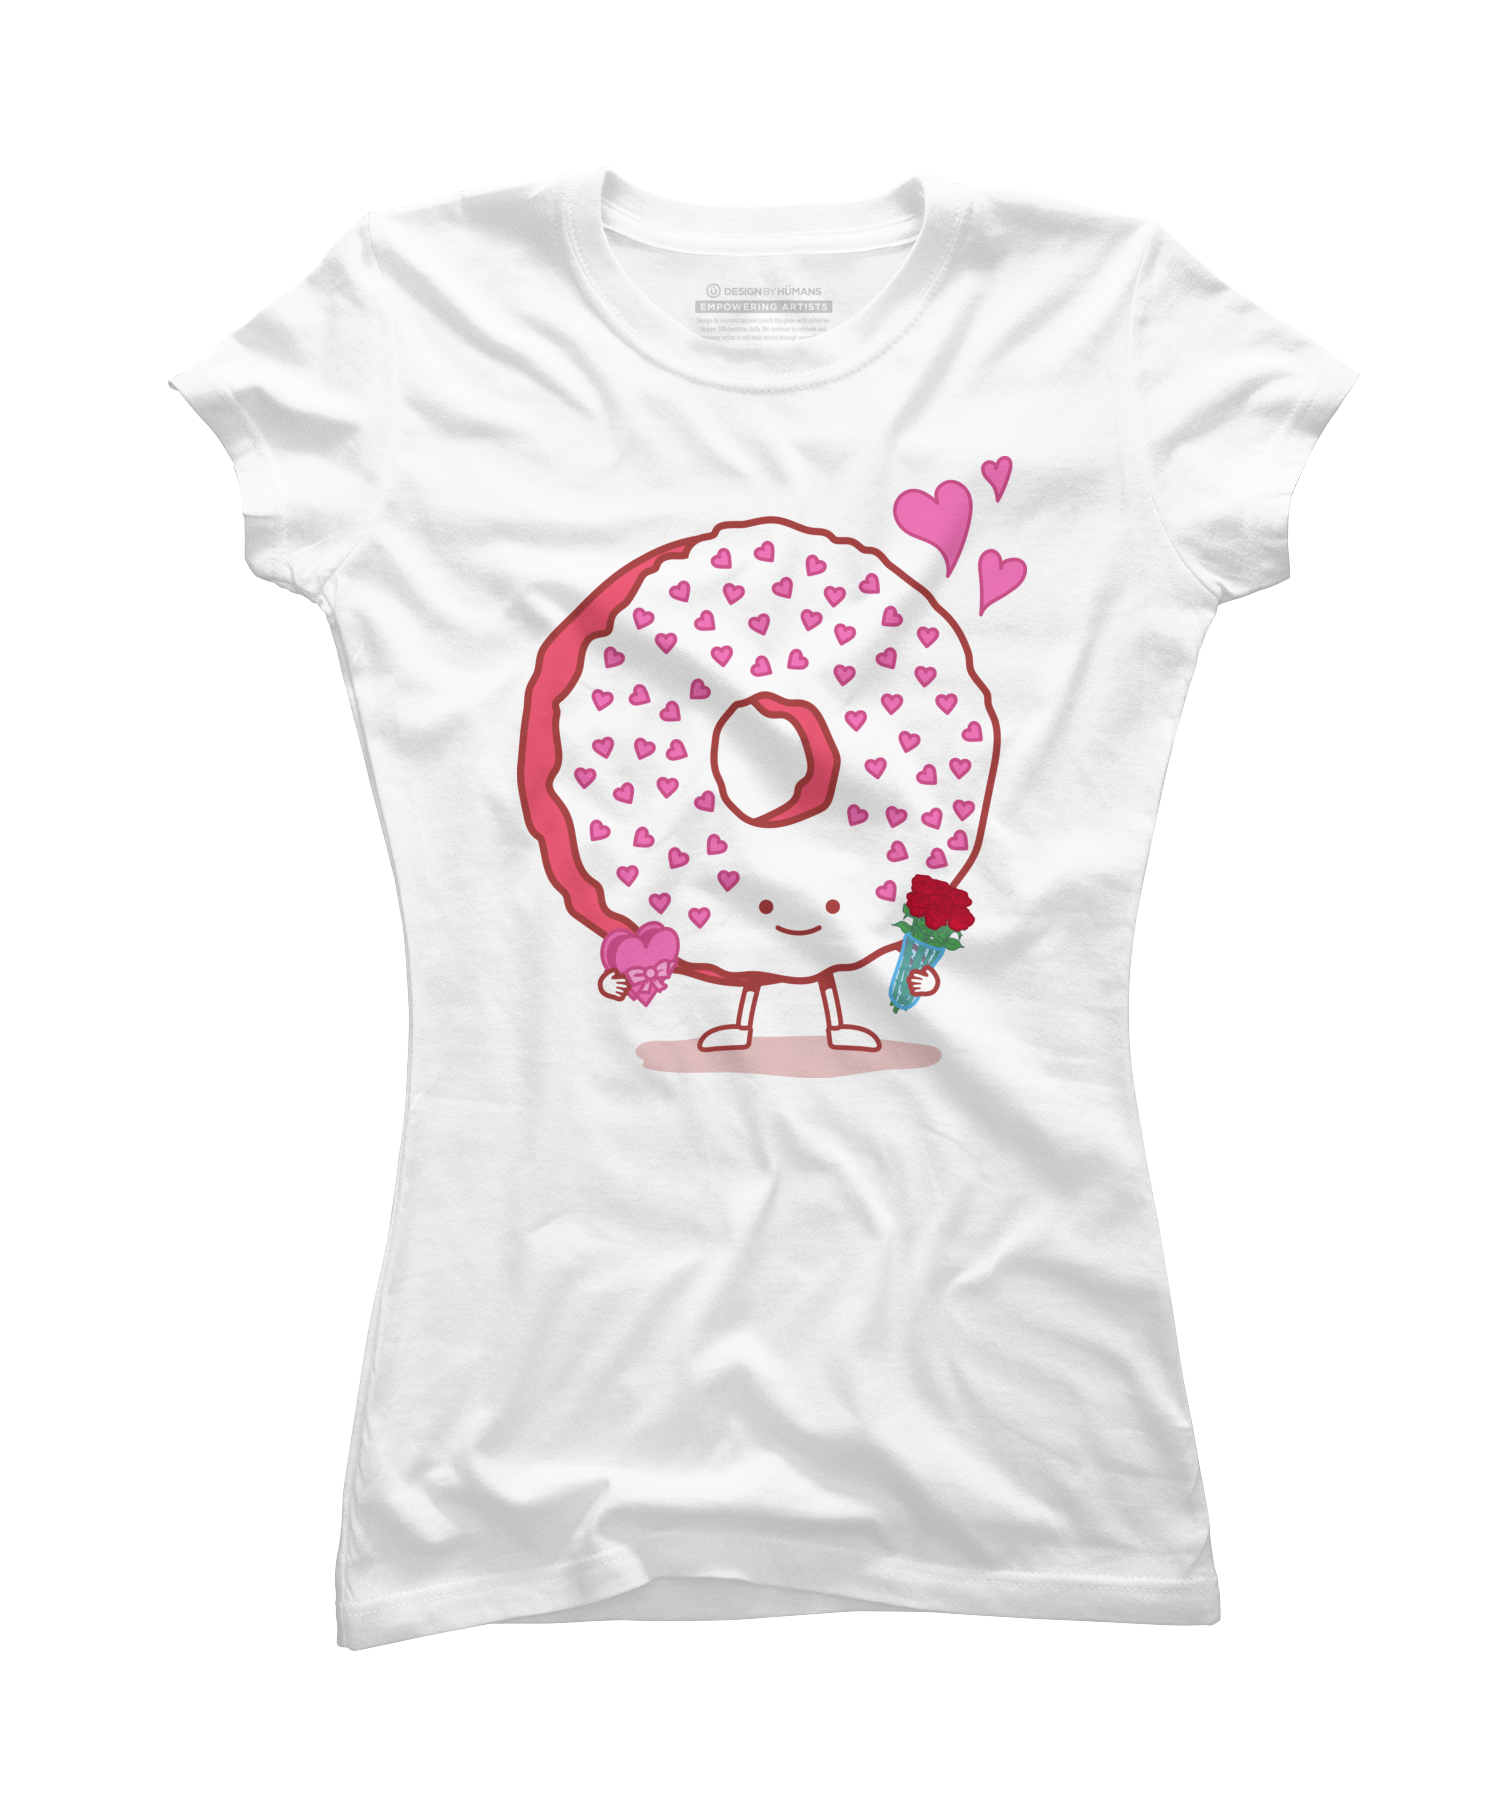 The Donut Valentine Women's T-Shirt